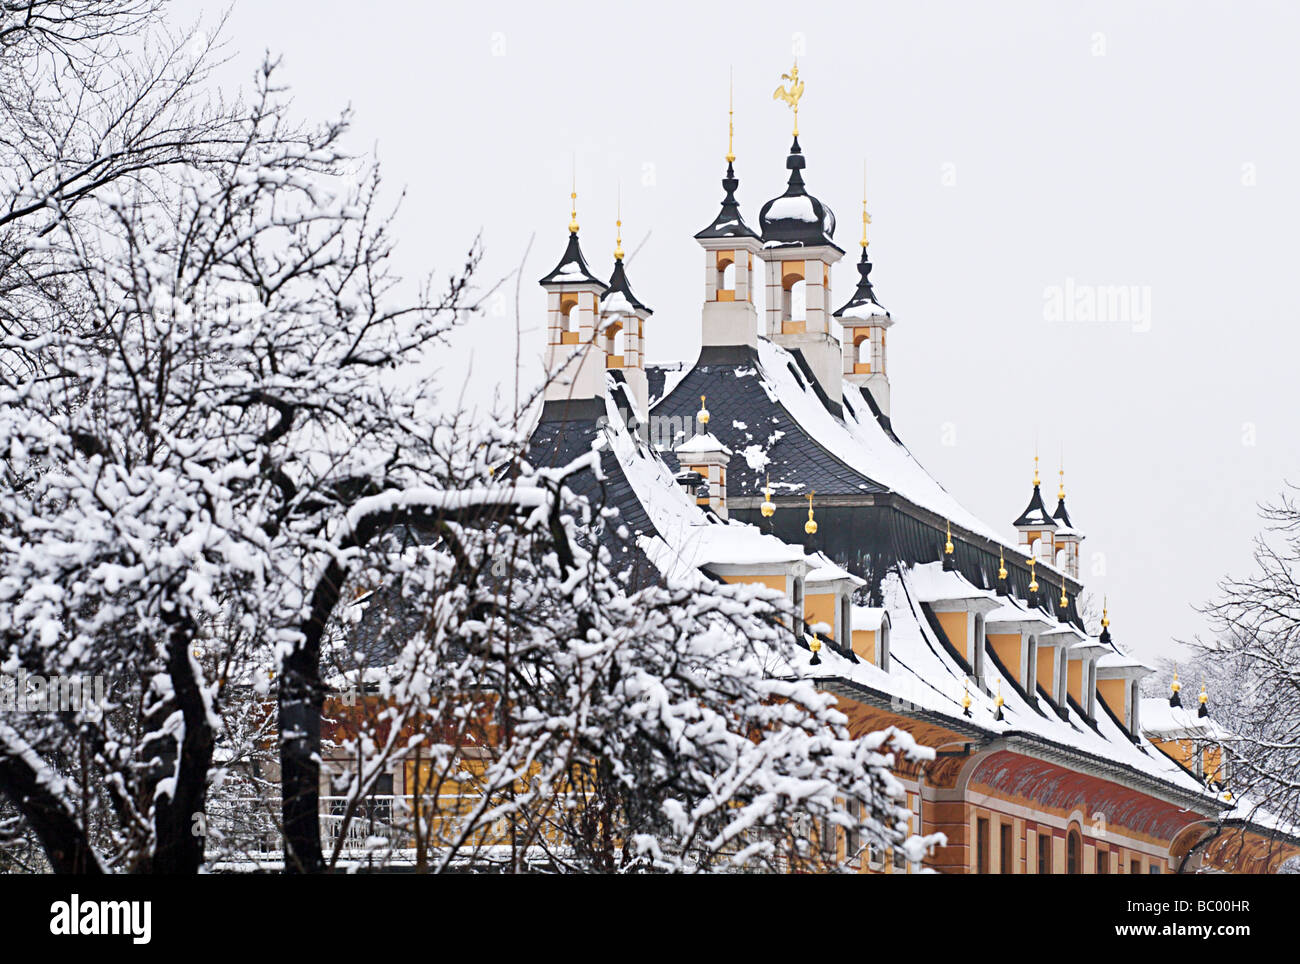 View of the snow-covered spire-spicked roof of Pillnitz Castle near Dresden, Germany - Stock Image